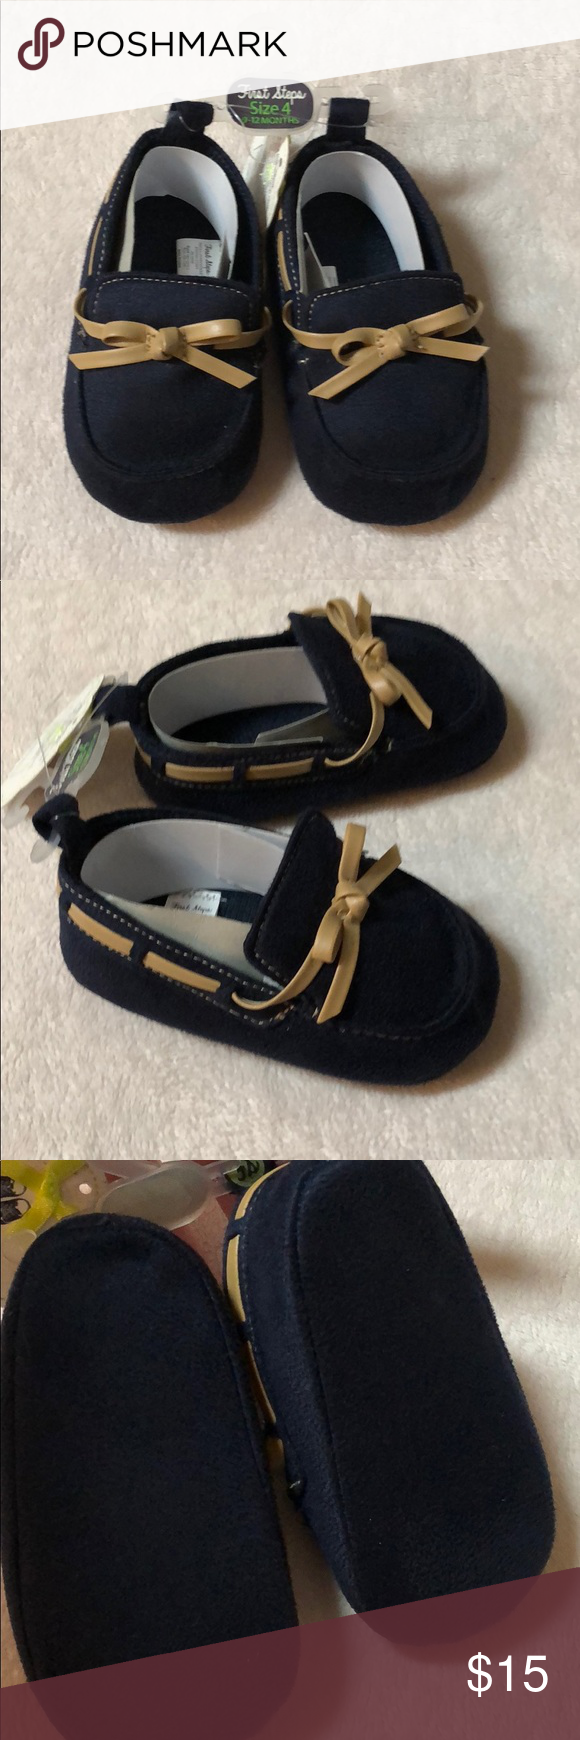 stepping stones   Soft baby shoes